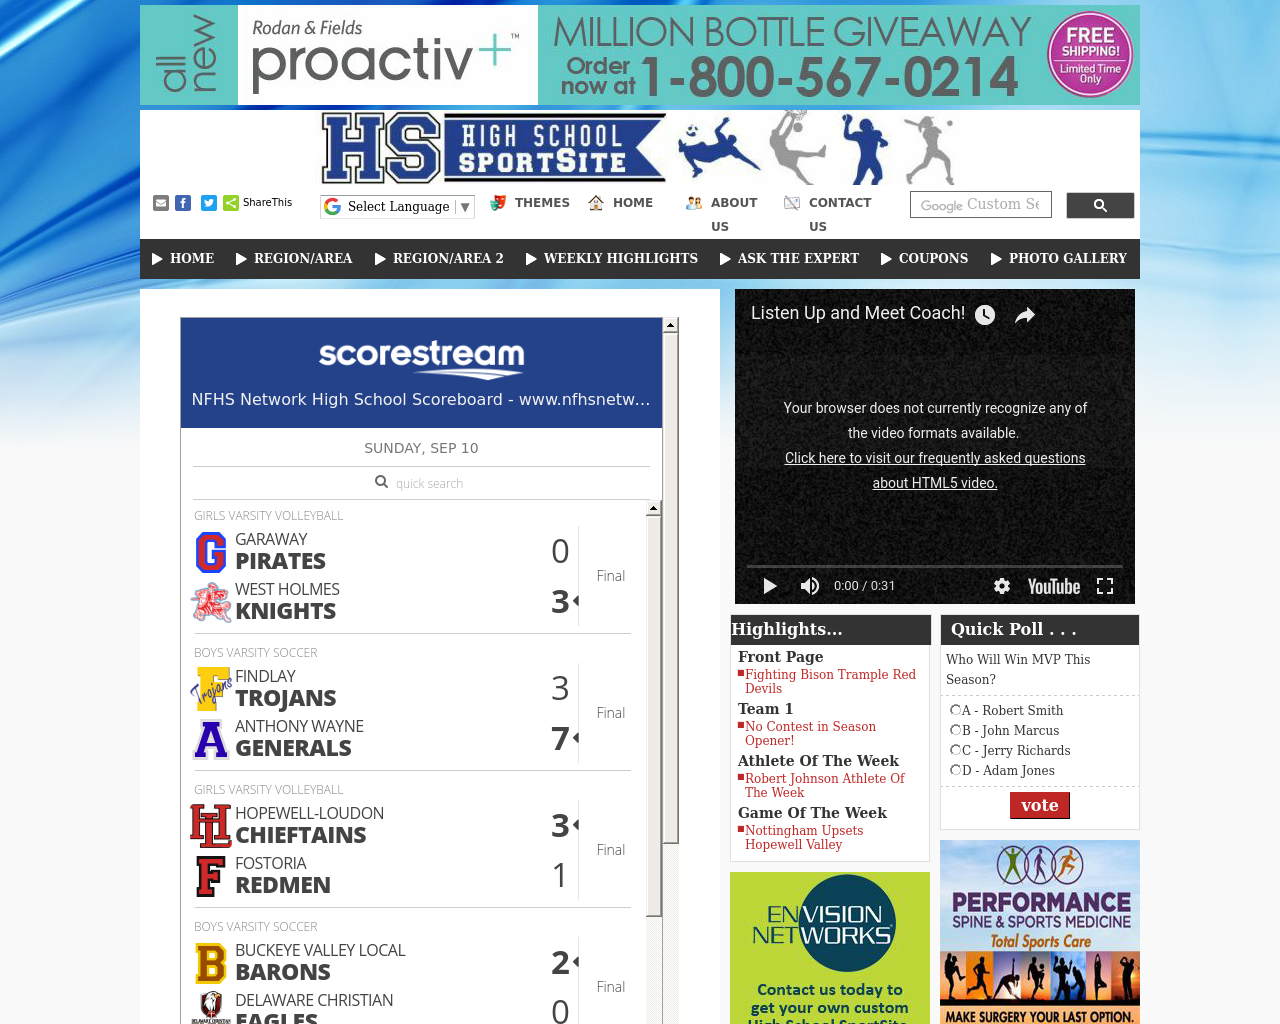 High-School-Sport-Site-Advertising-Reviews-Pricing